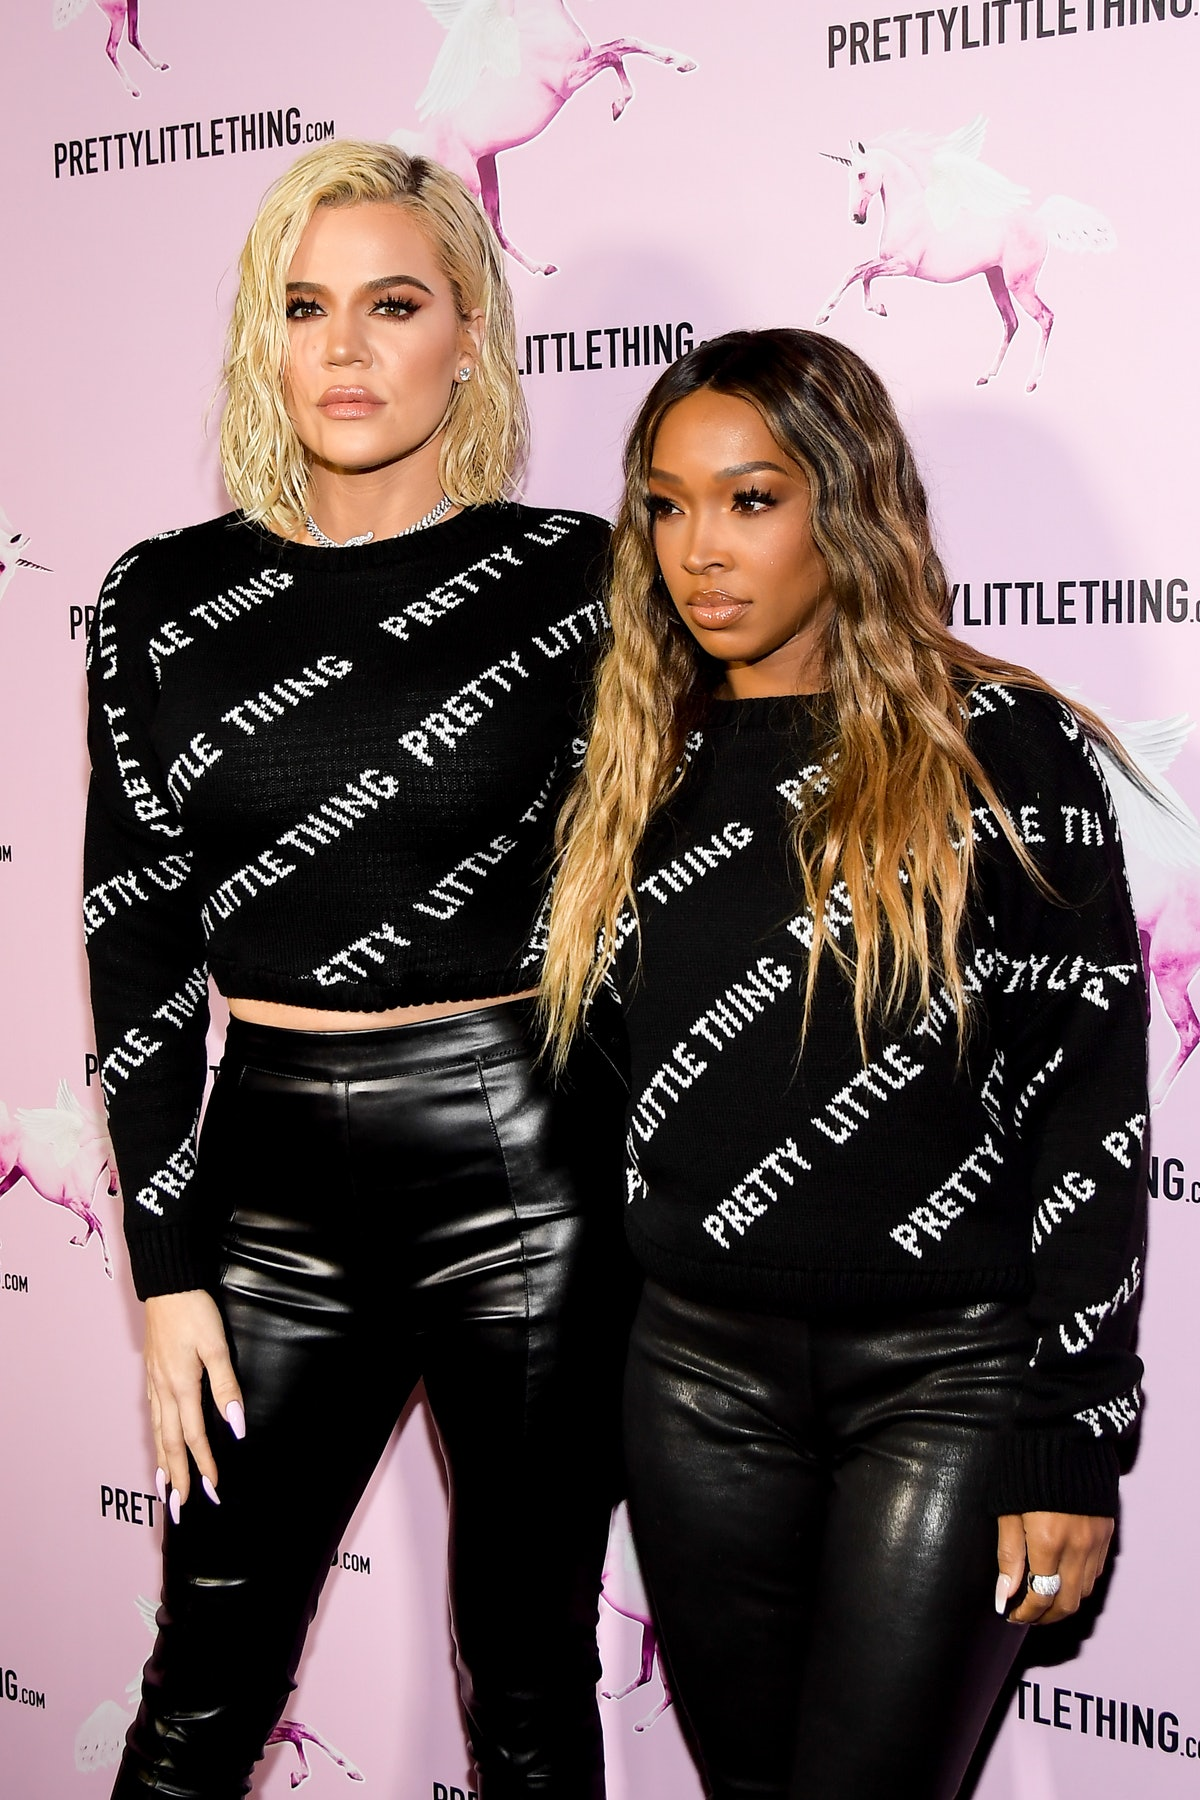 Khloe Kardashian and Malika Haqq attend a launch event for Pretty Little Thing.